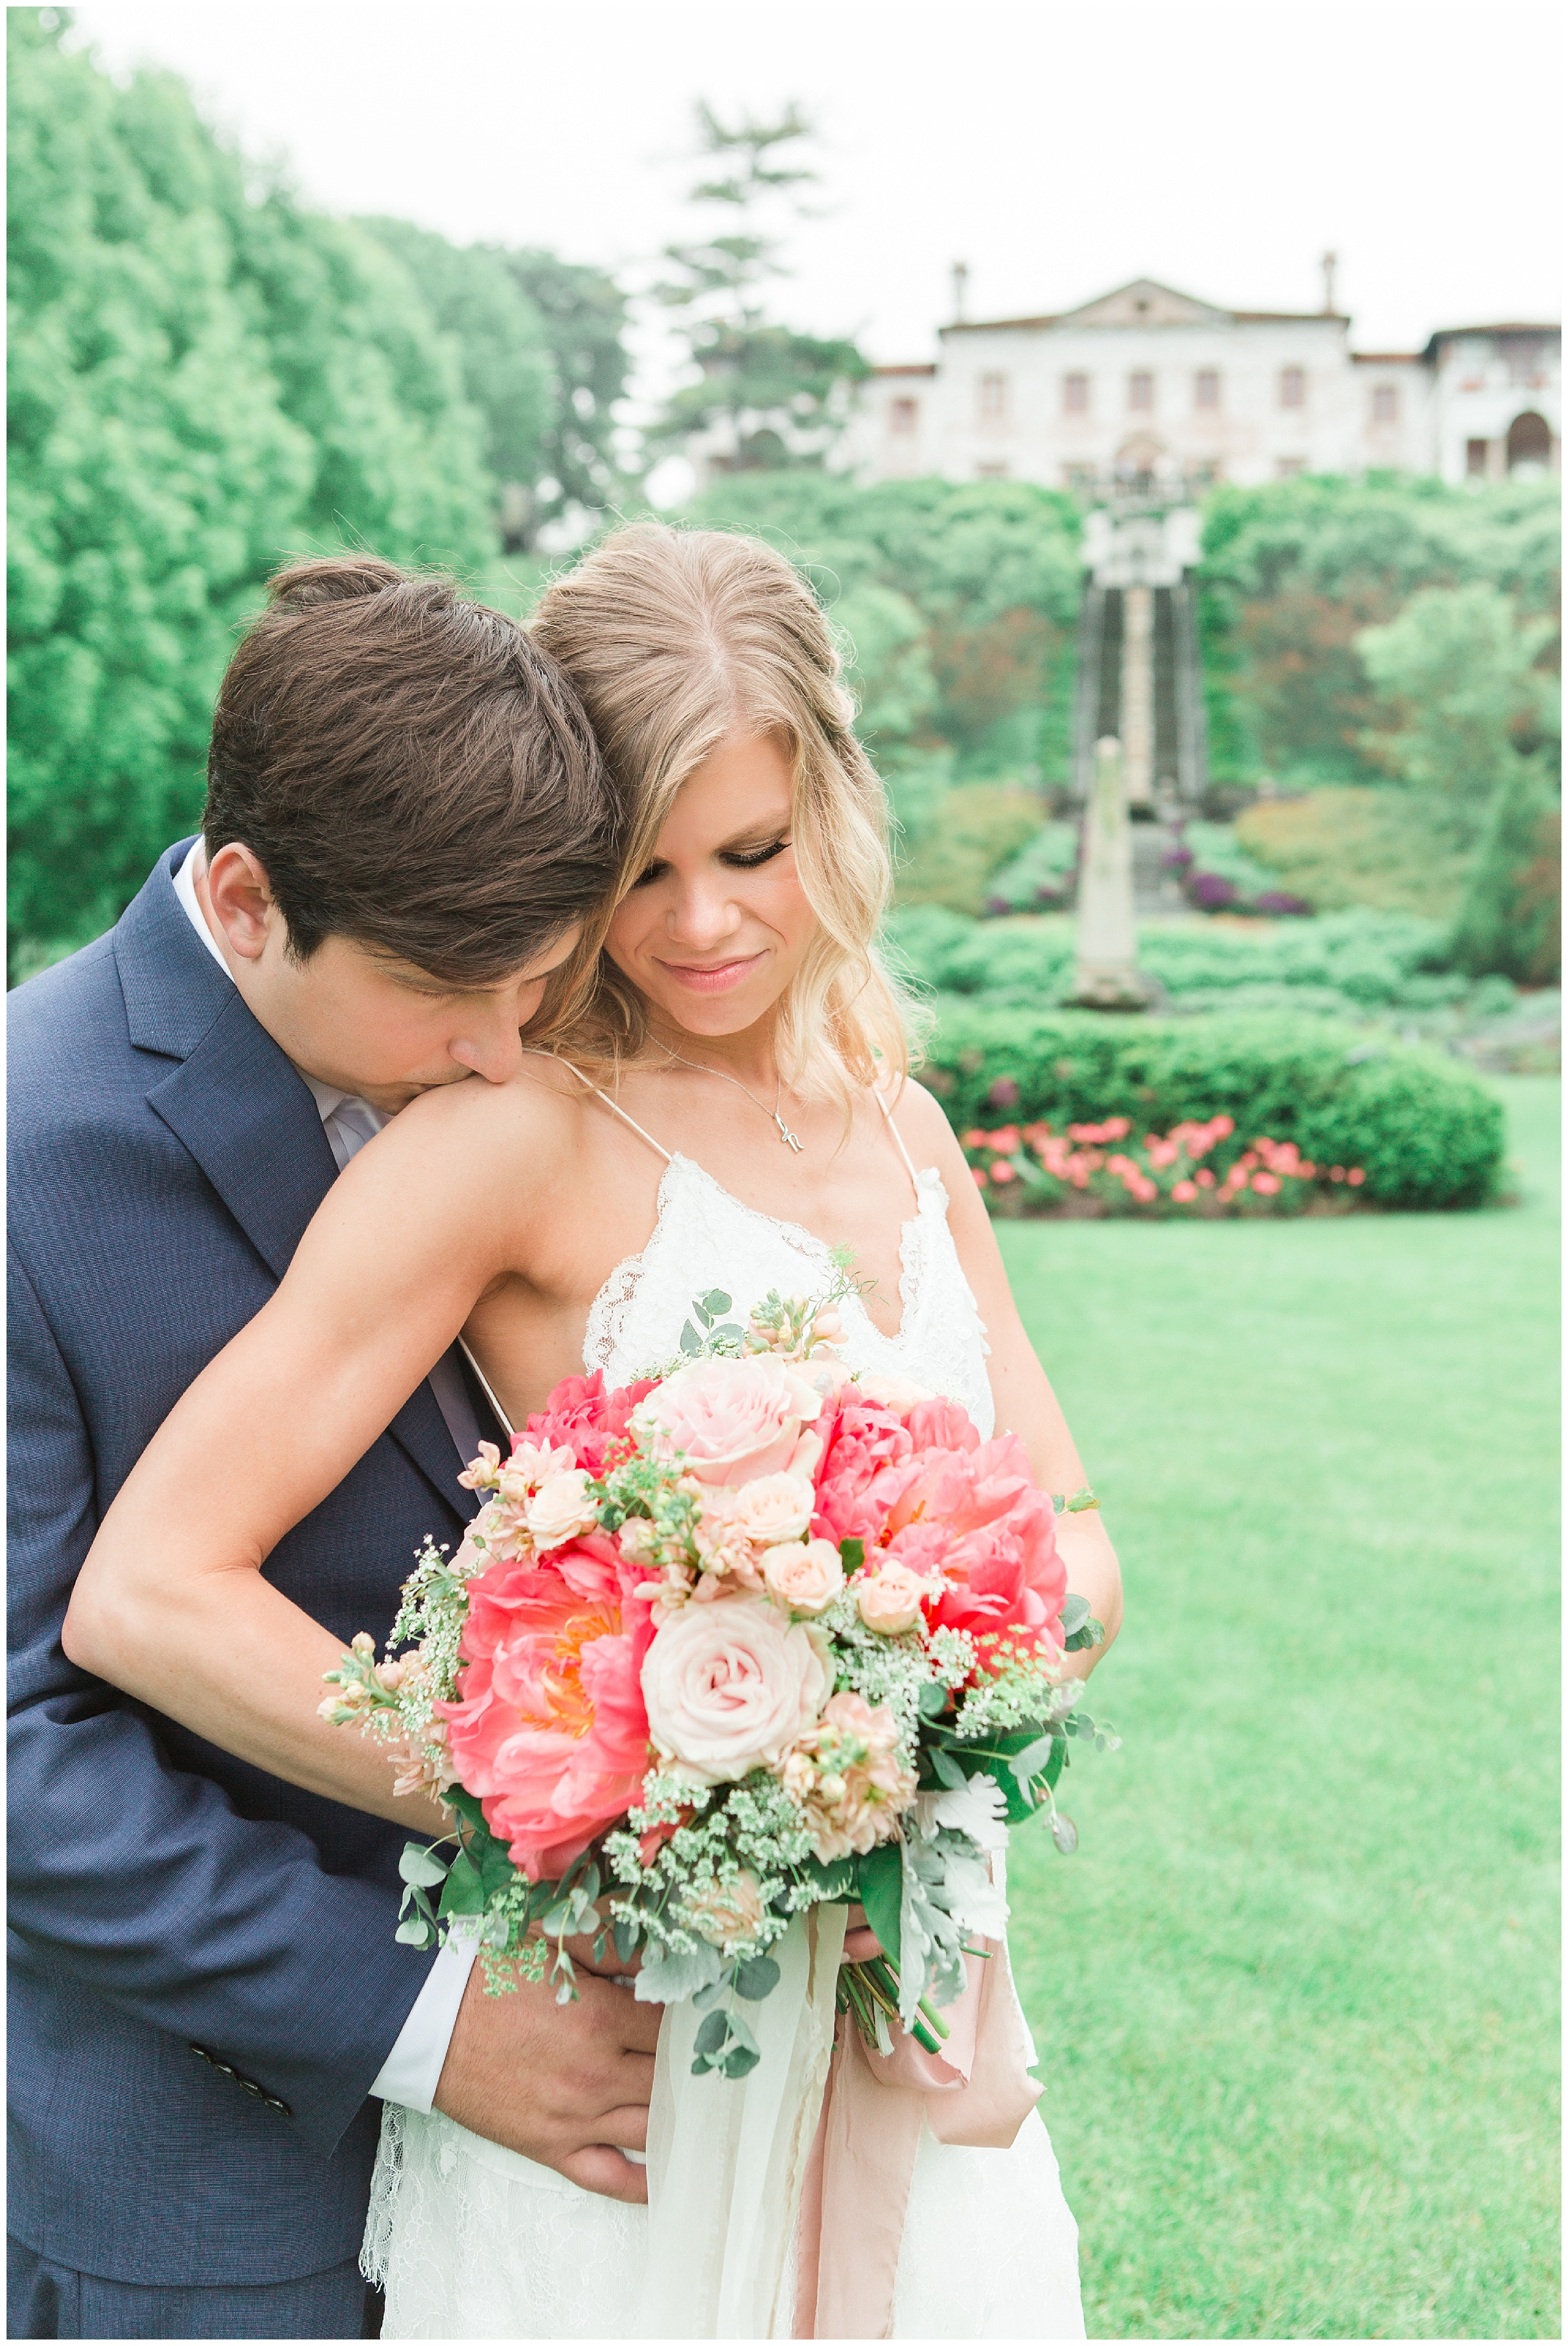 Bohemian Brunch Wedding at Villa Terrace in Milwaukee, WI